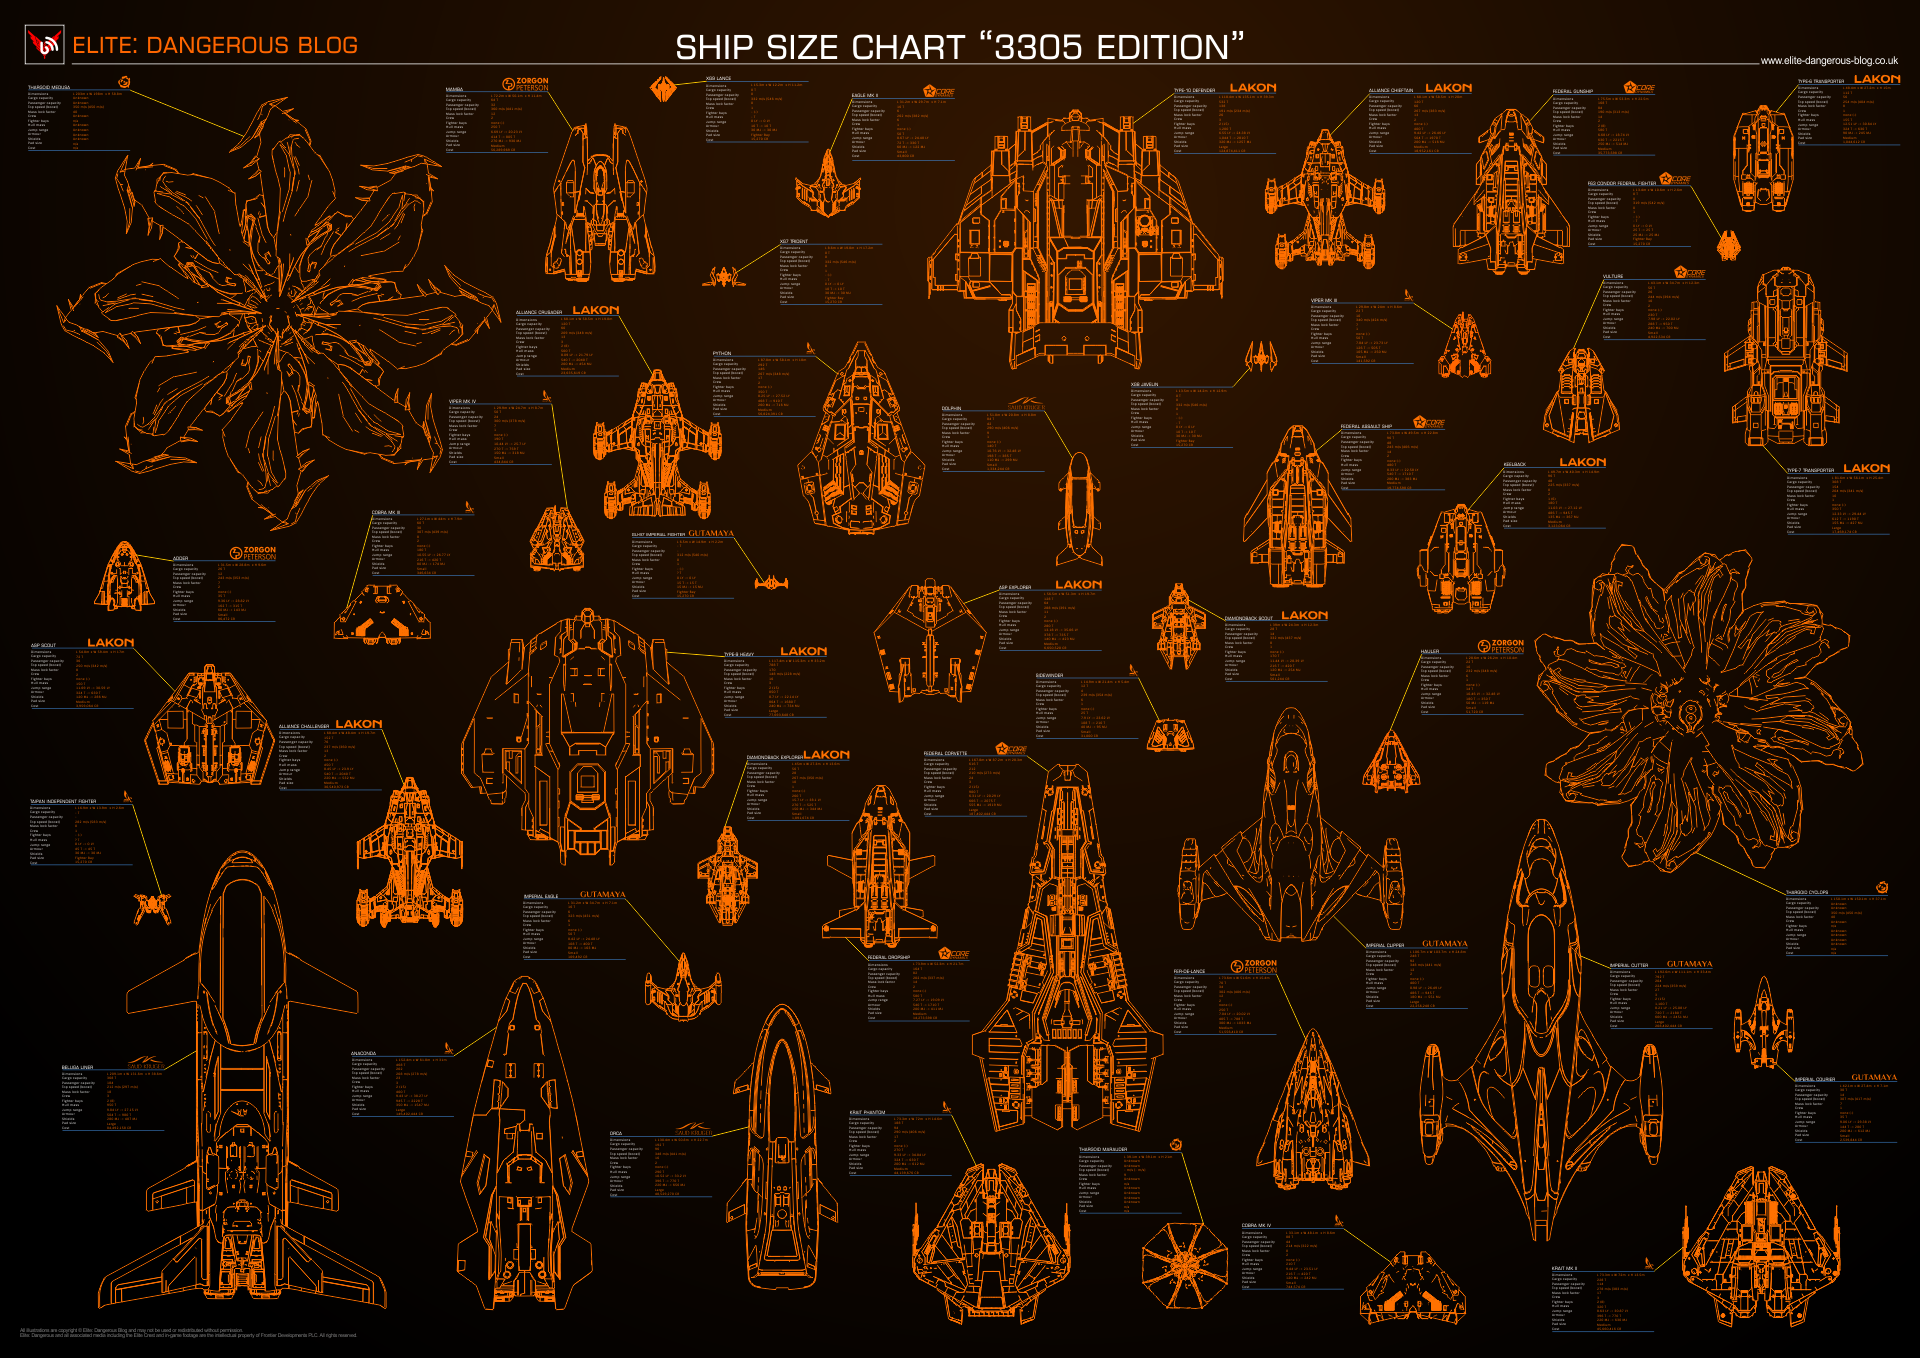 Elite Dangerous Blog News and events from the Elite